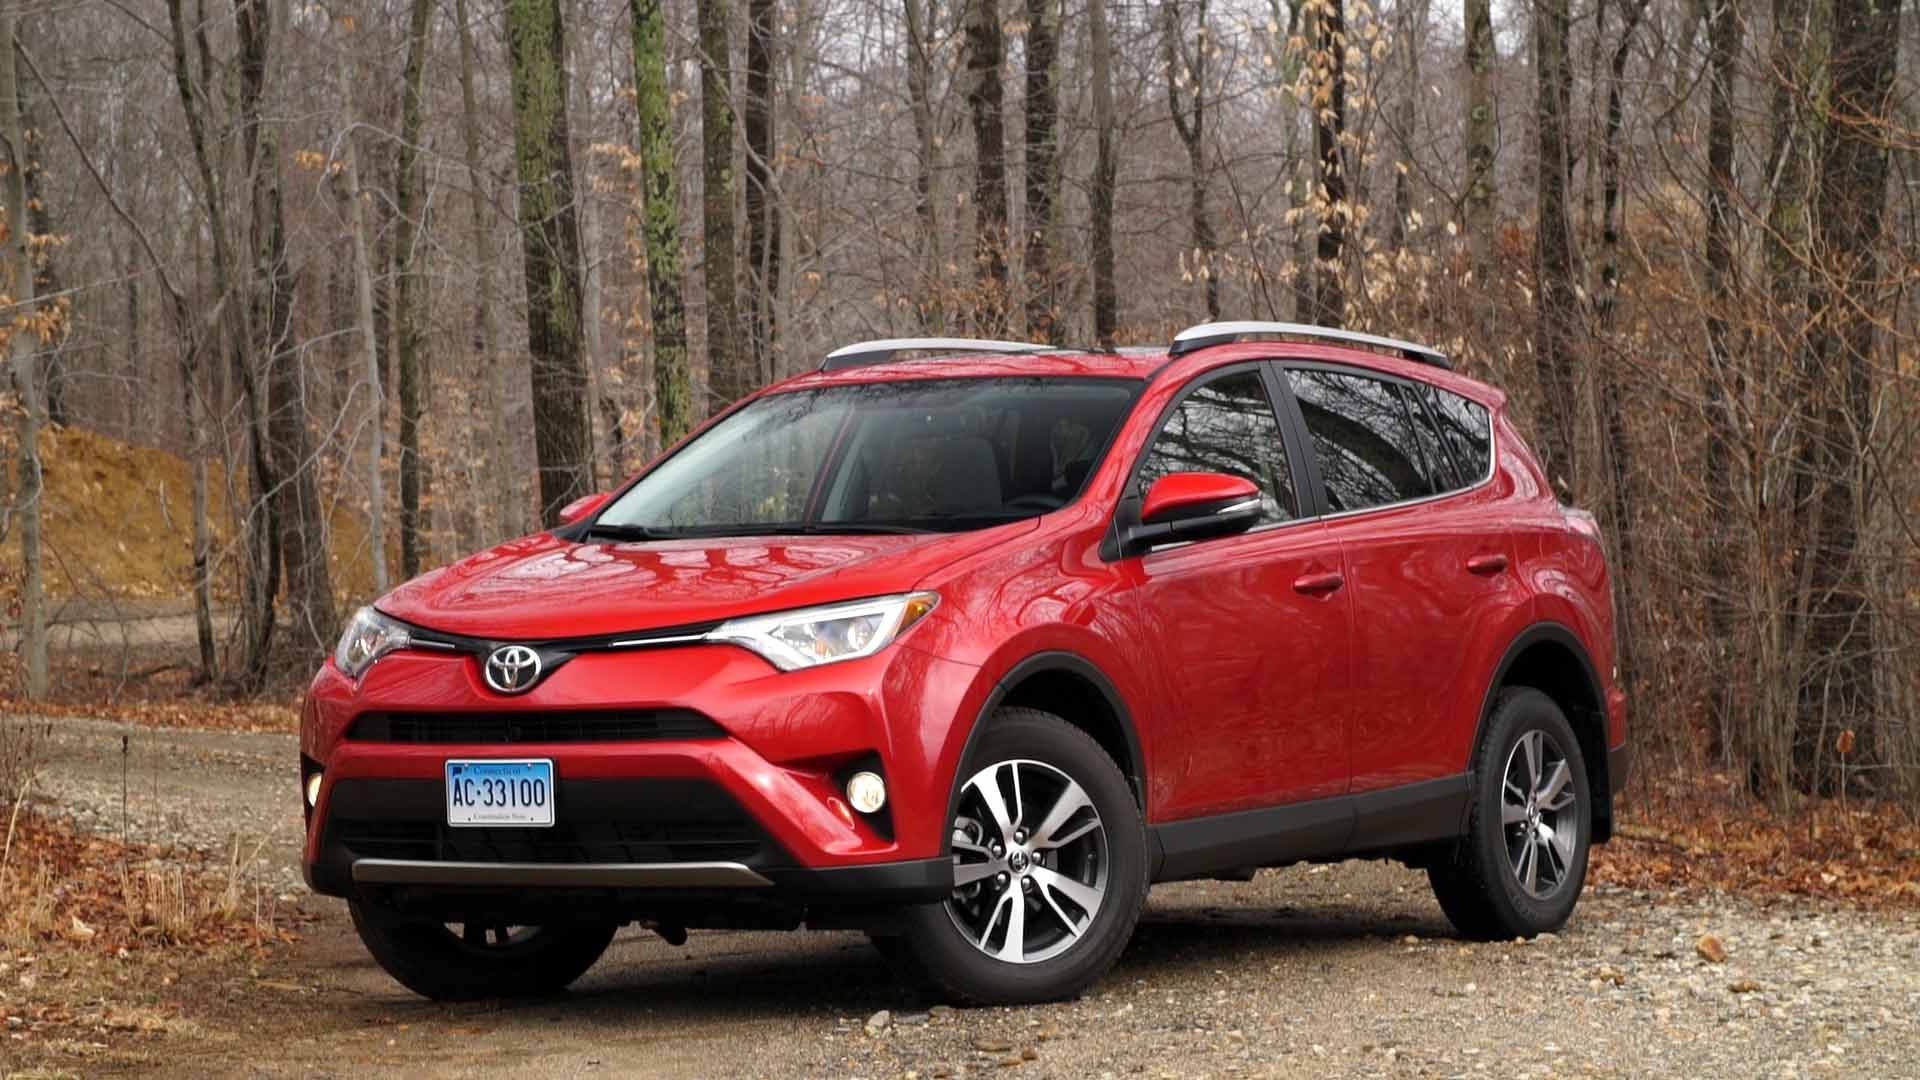 toyota rav4 hybrid most fuel efficient suv ever tested. Black Bedroom Furniture Sets. Home Design Ideas